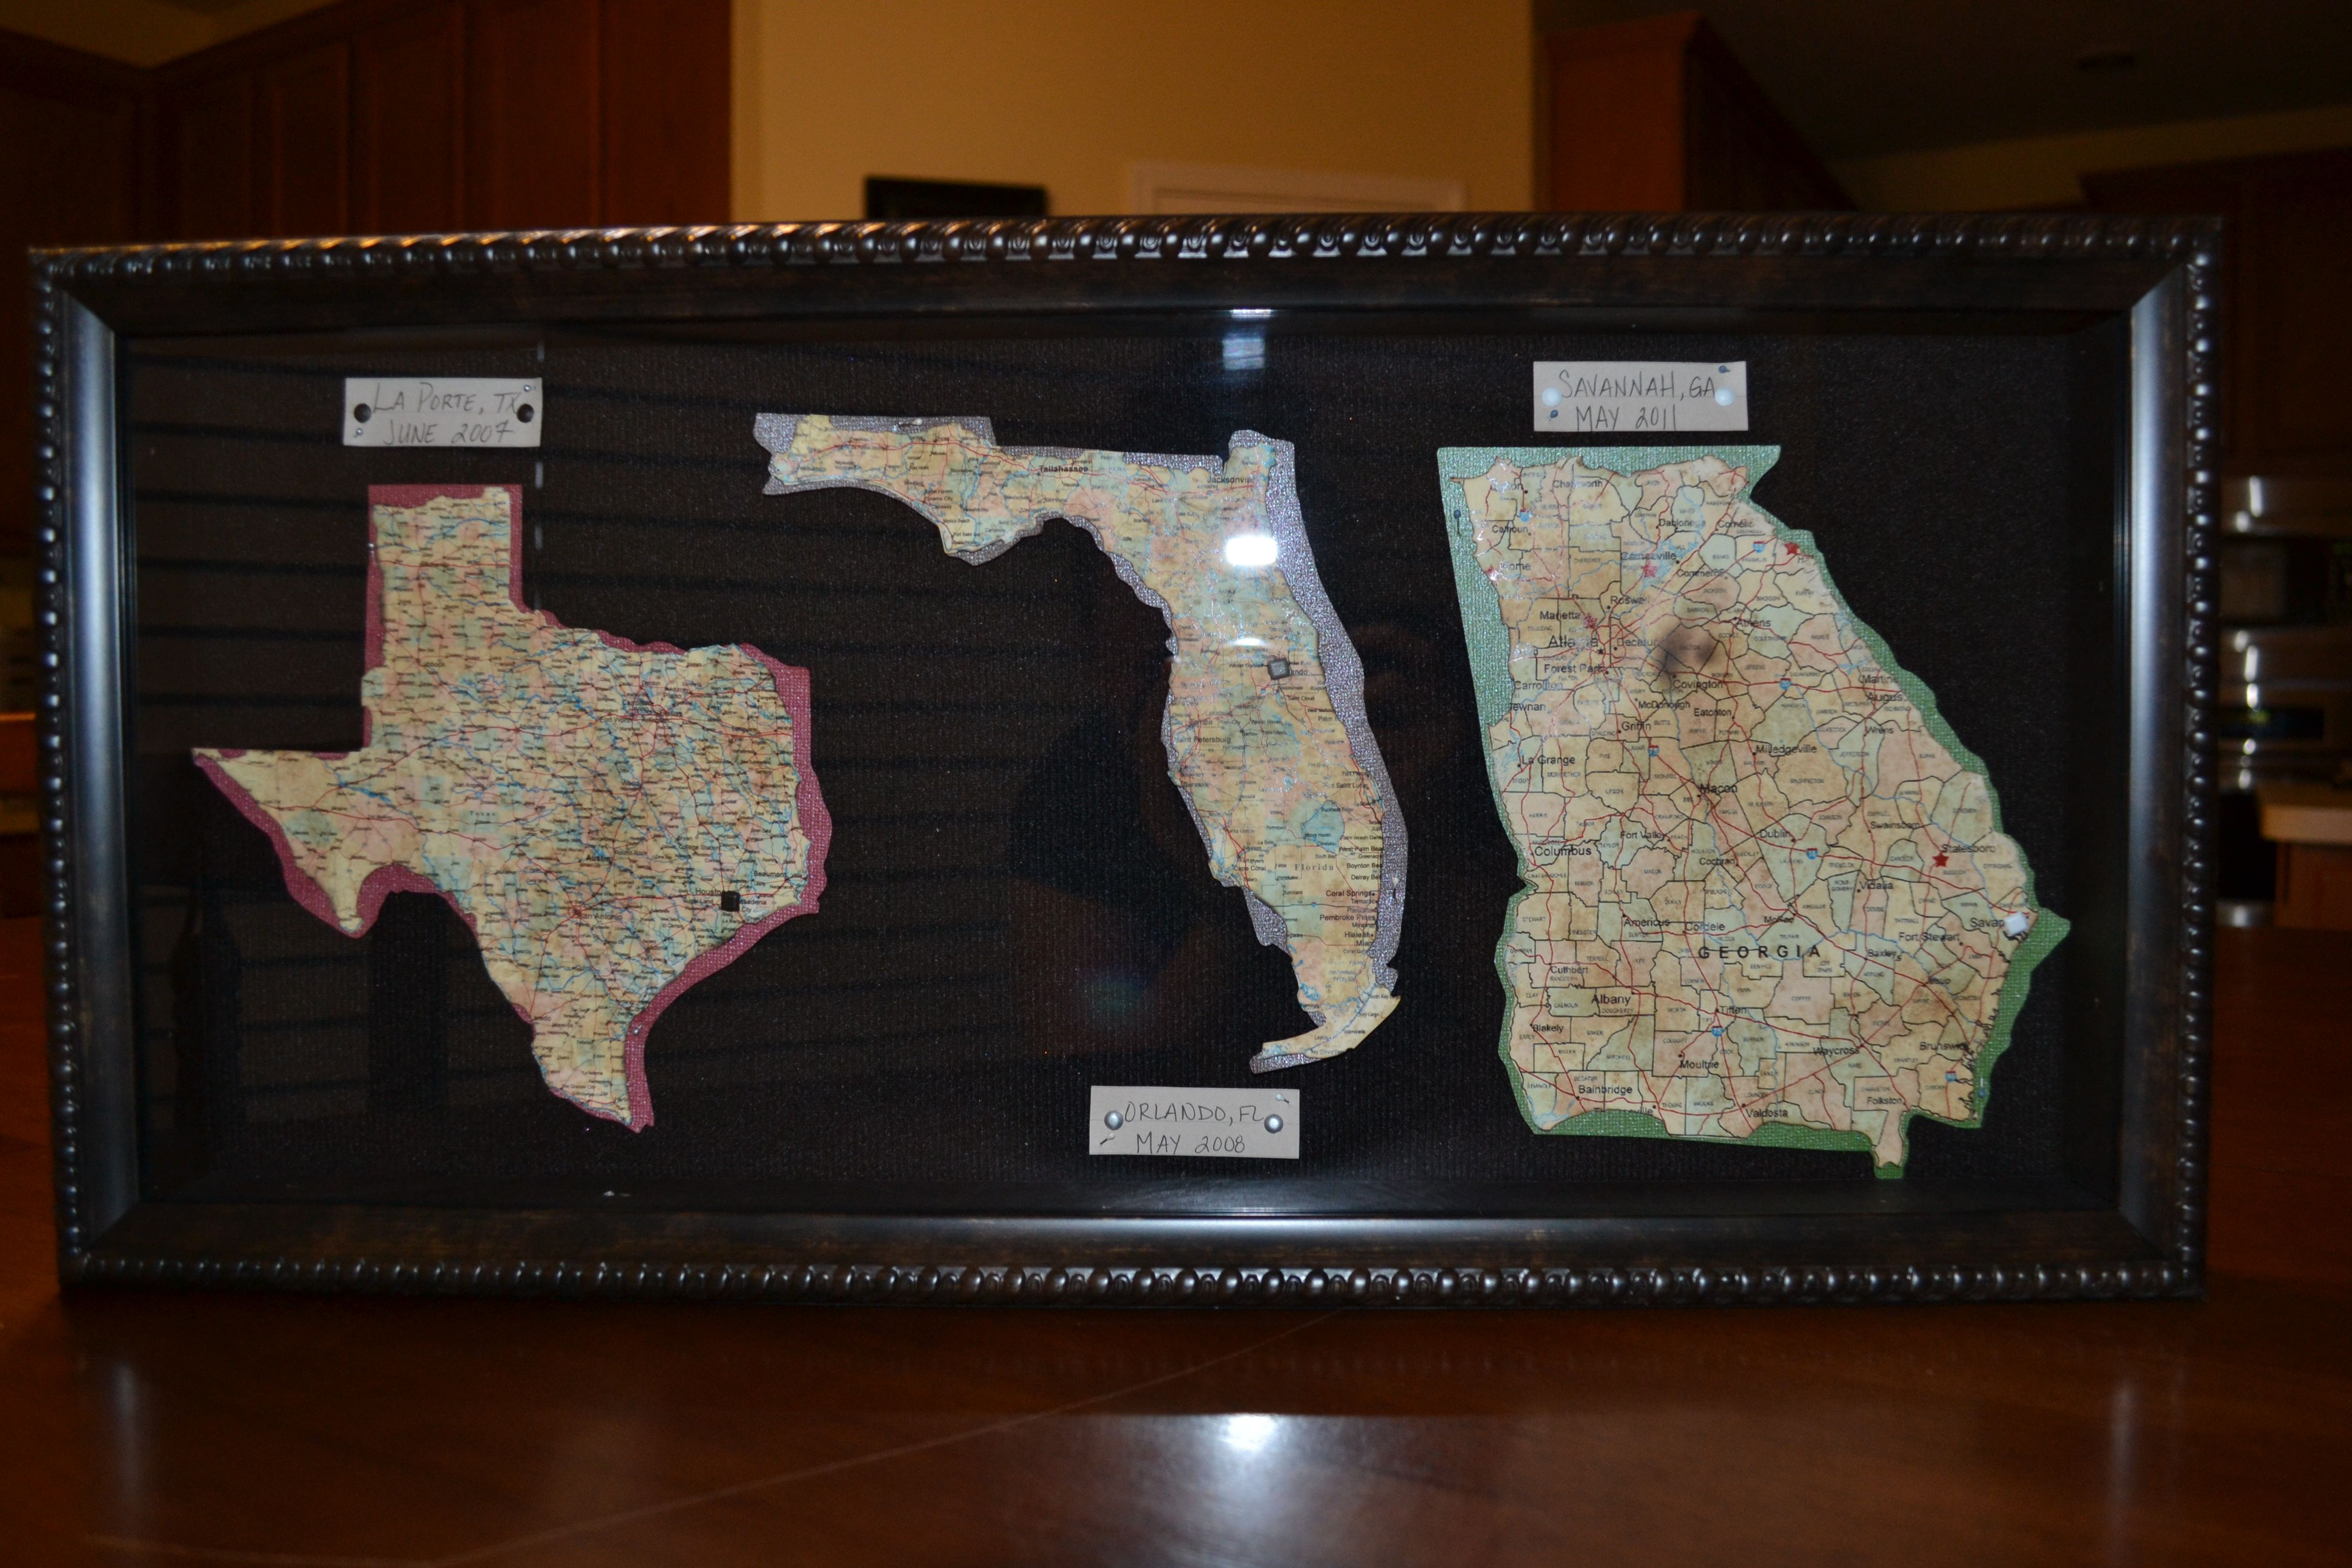 I Had Been Seeing The Ideas For Framing Map Pieces